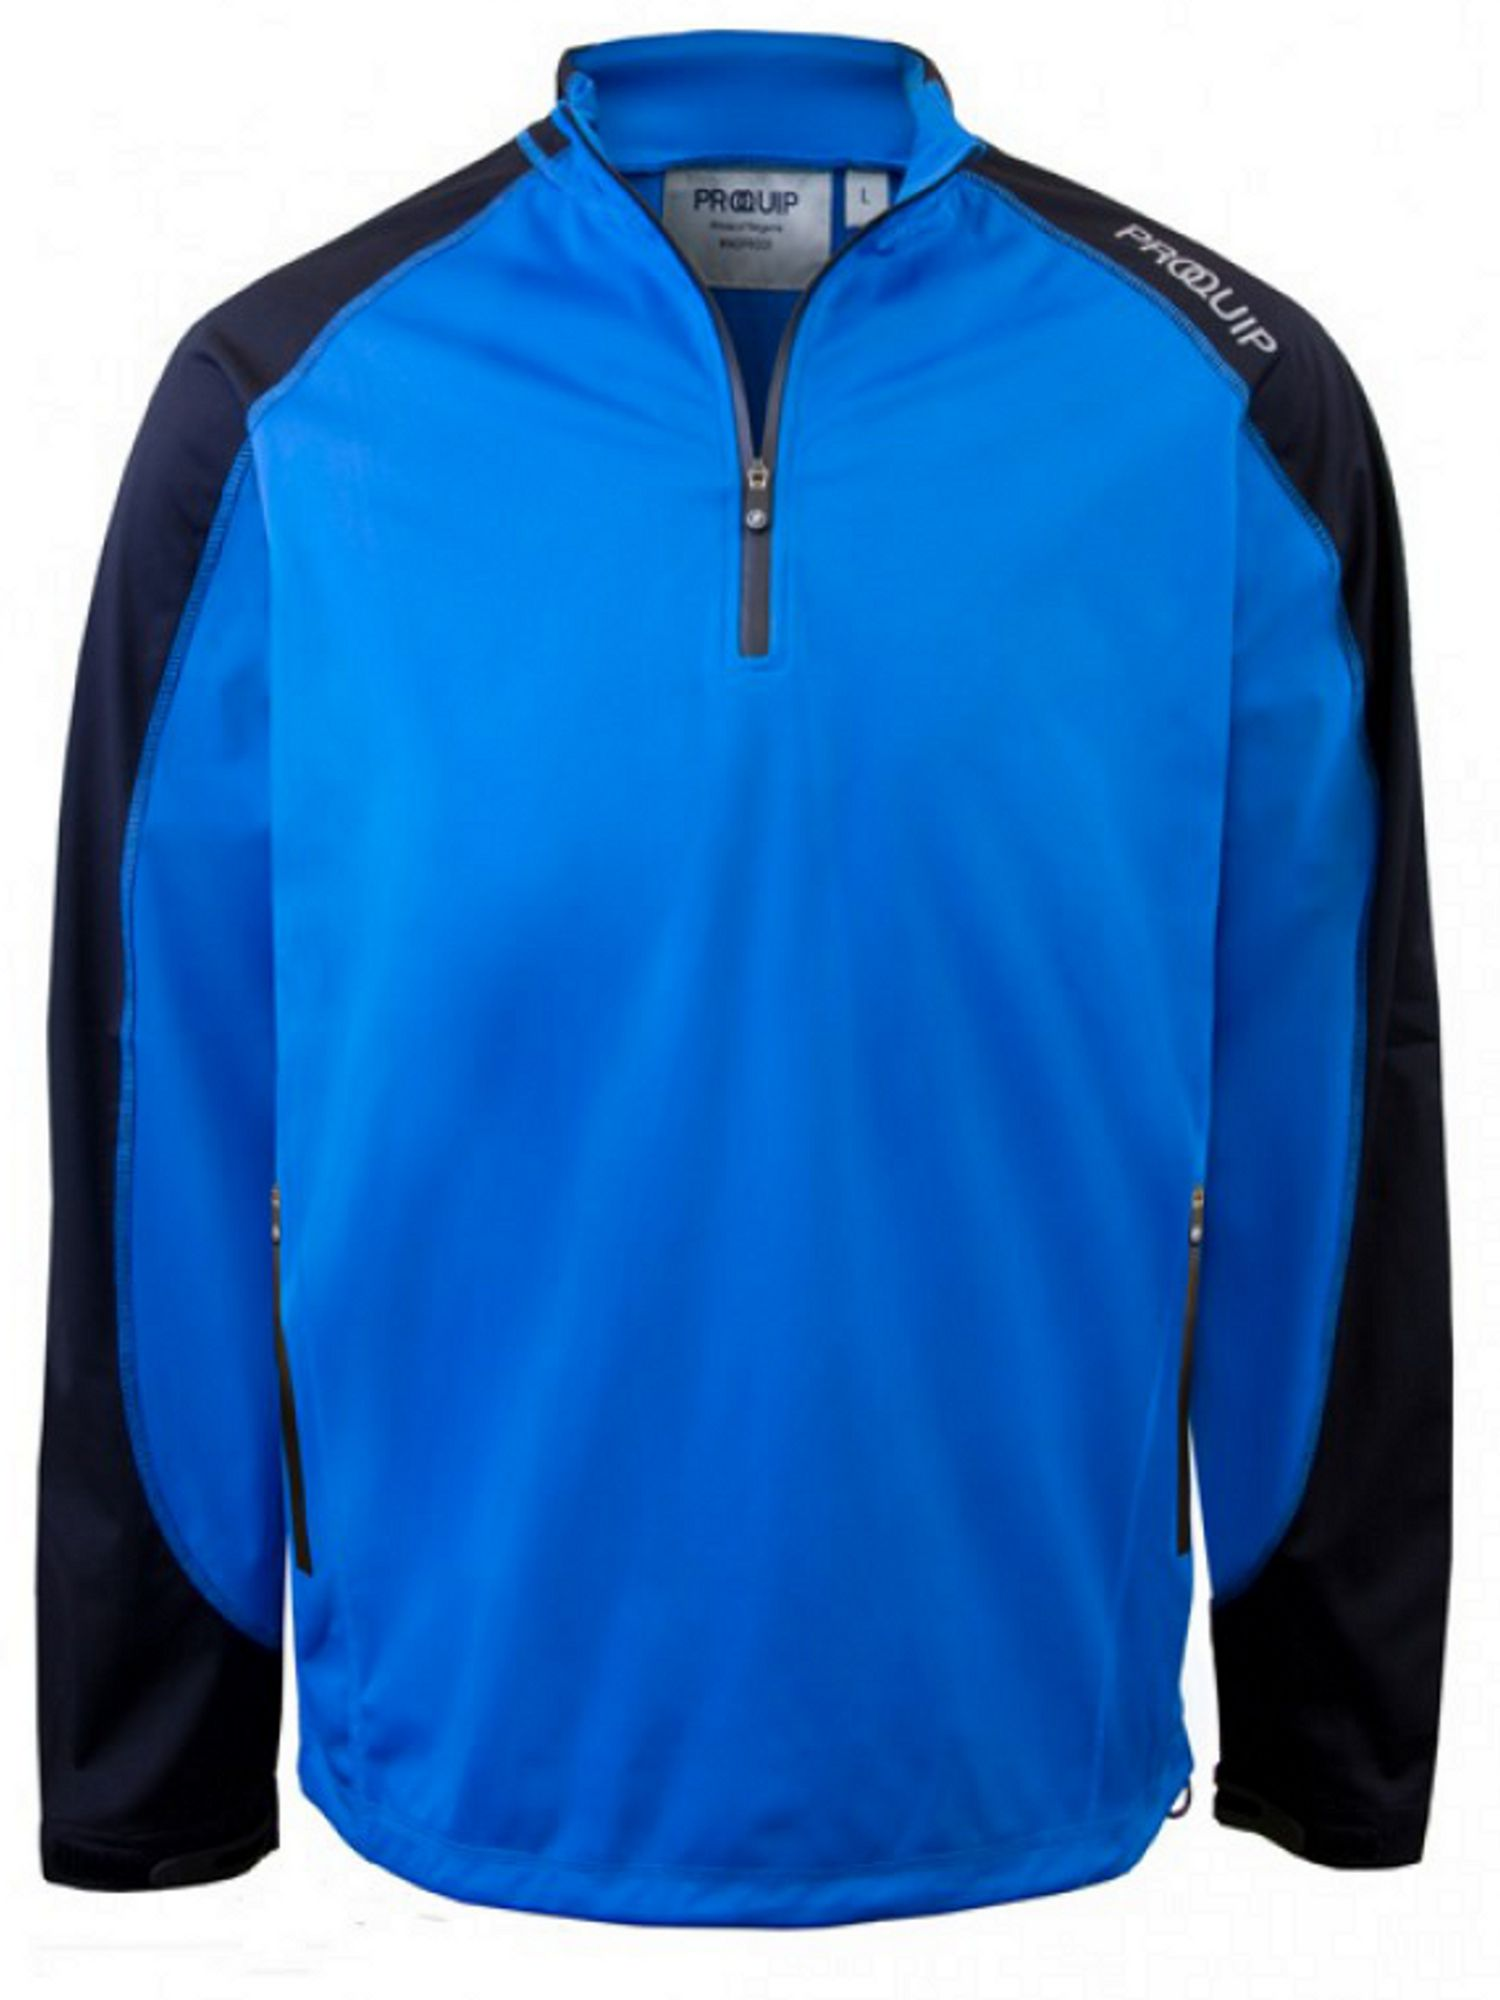 Tour flex 360 wind top